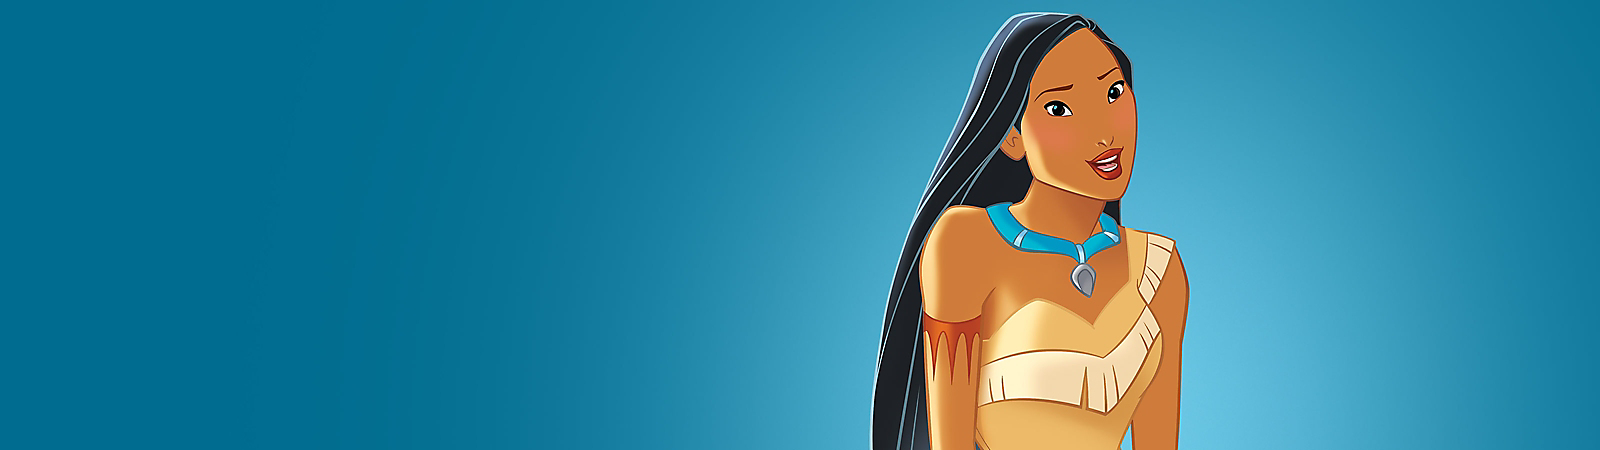 Background image of Pocahontas